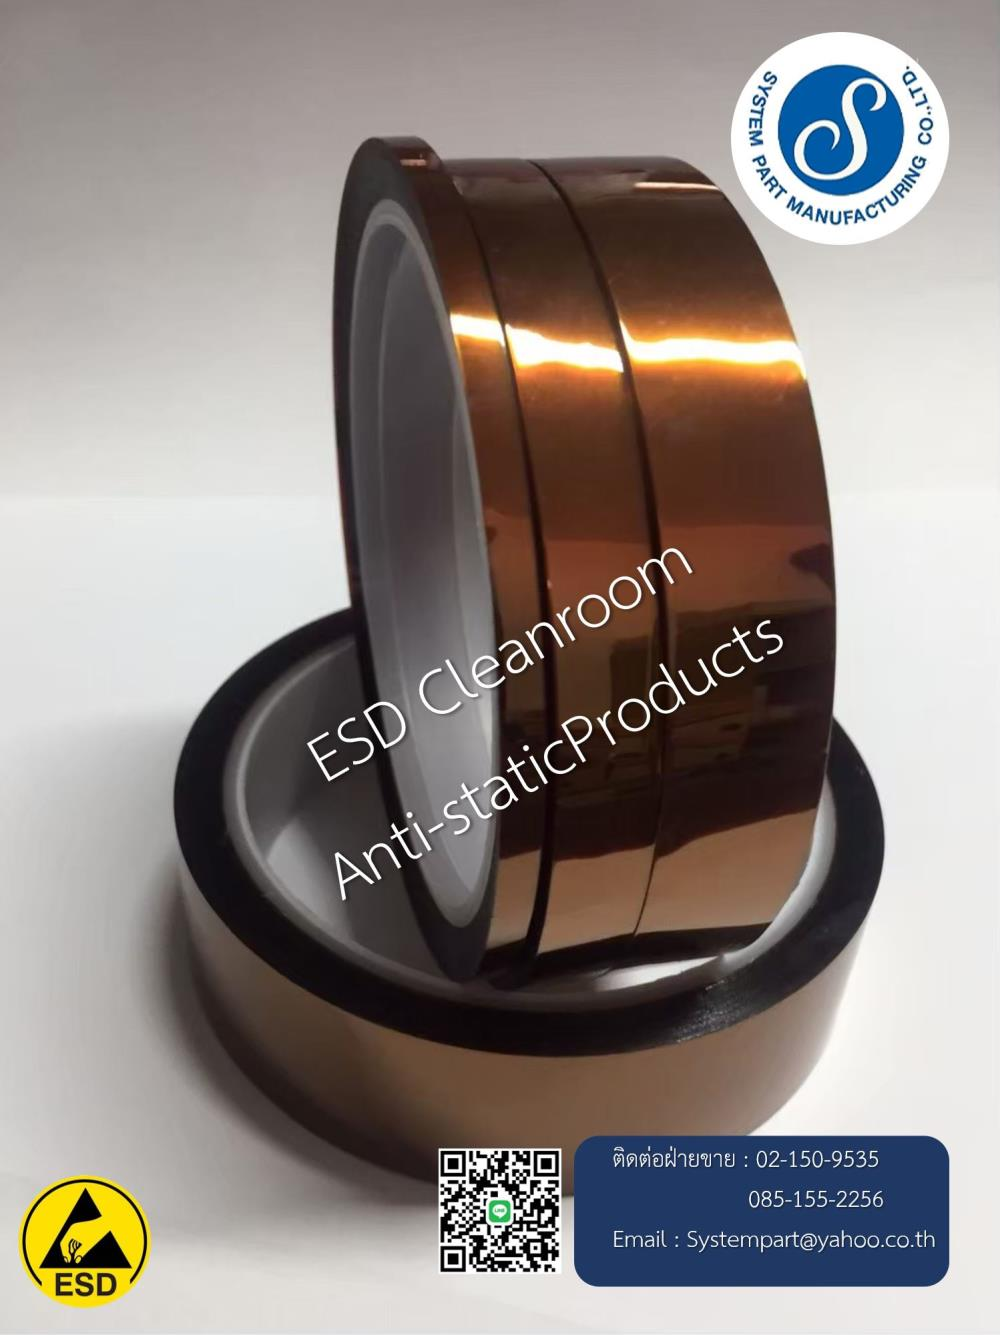 KaptonTape (Polyimide Tape),gloves,shoes,esd,tape,boots,cleanroom,medical,safety,fabrics,partitions,garment,footwear,mats,walls,products,wiper,groundings,disposable,tools,disposable,equipment,handling,esdcotrol.cleanpaper,wrist,strap,SYSTEMPART,Sealants and Adhesives/Tapes